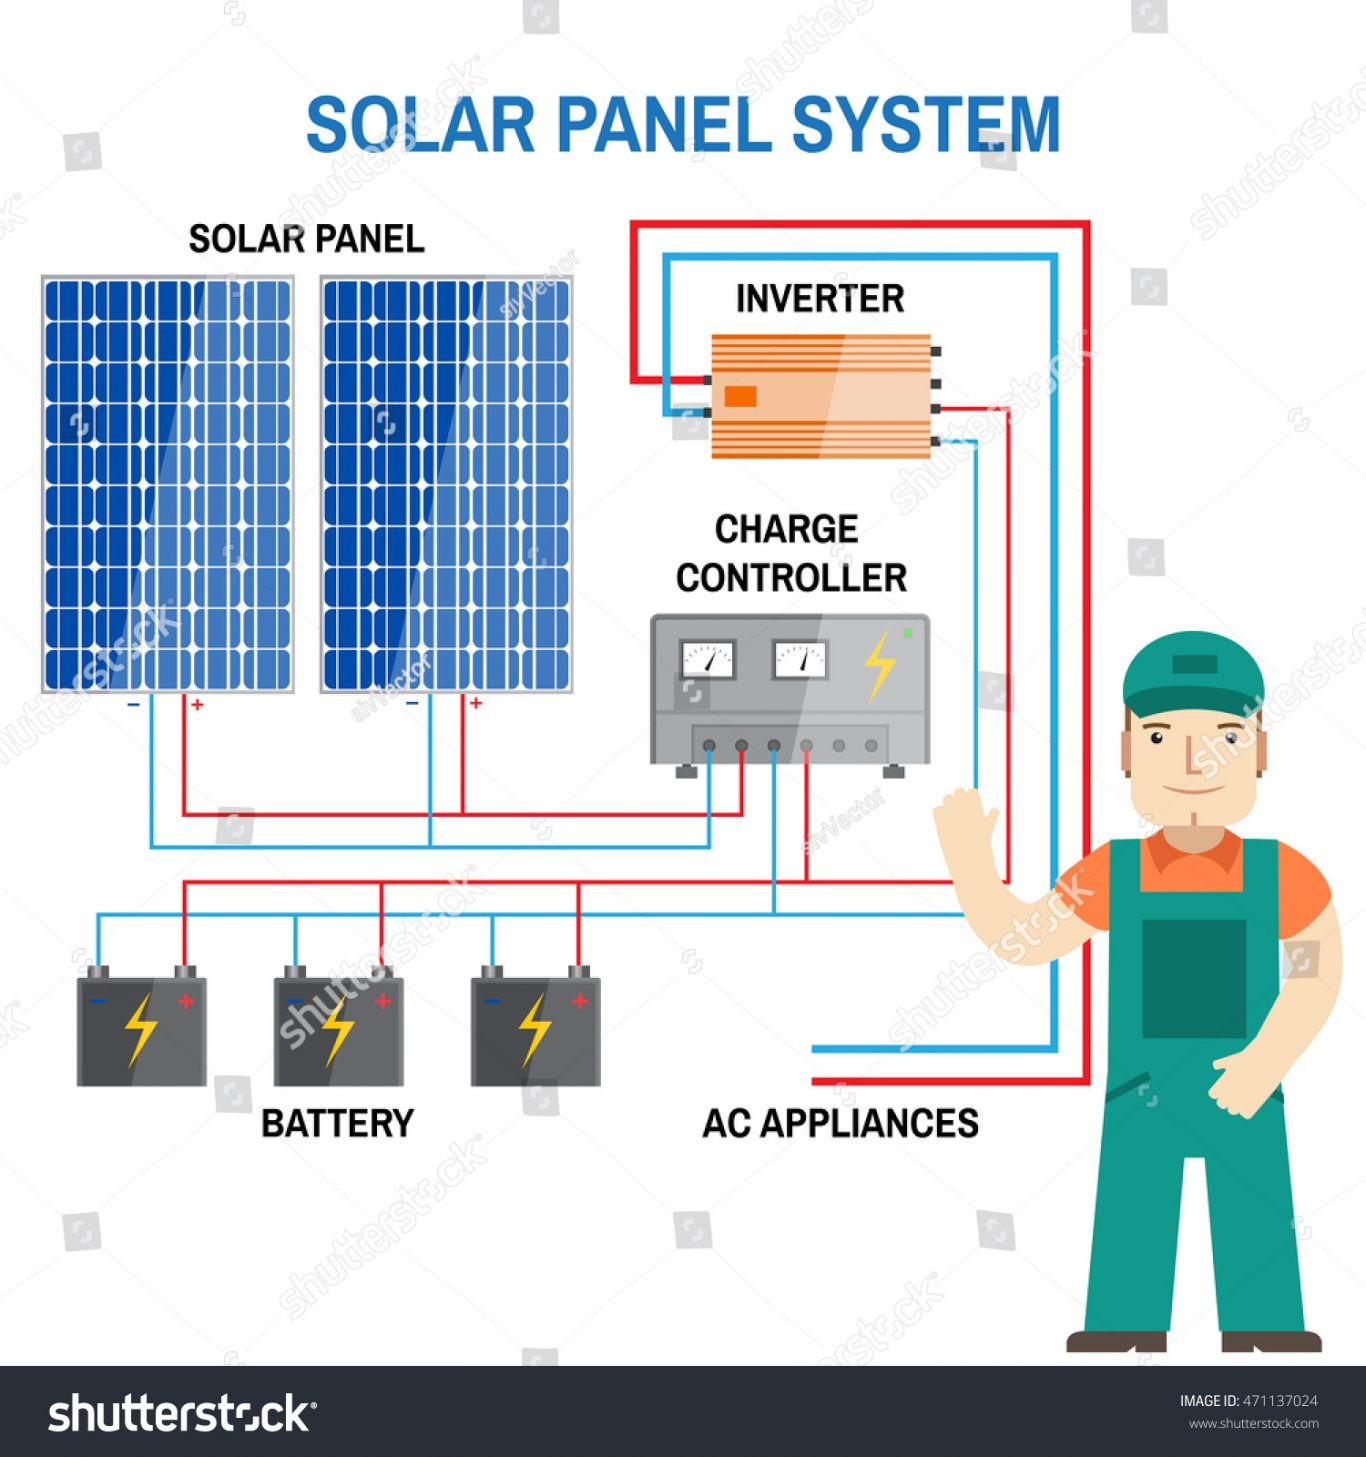 solar panel wiring diagram pdf Download-solar array wiring diagram fresh solar panel charge controller wiring diagram of solar array wiring diagram 12-o